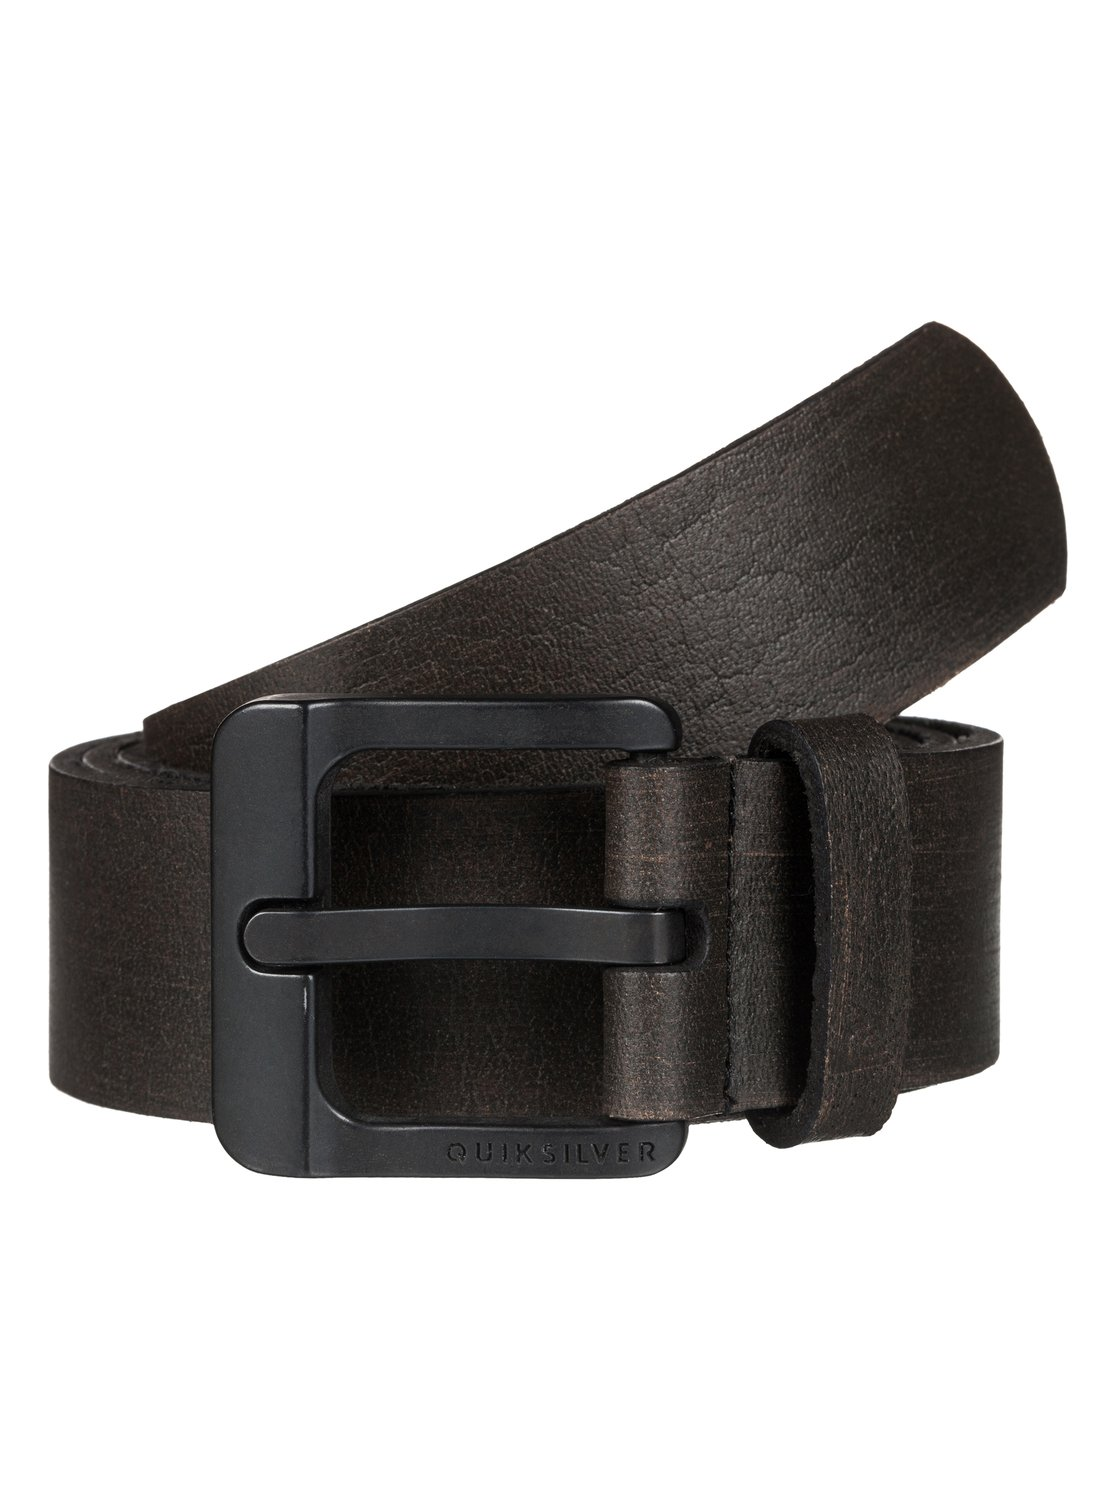 Gutherie - Leather Belt<br>